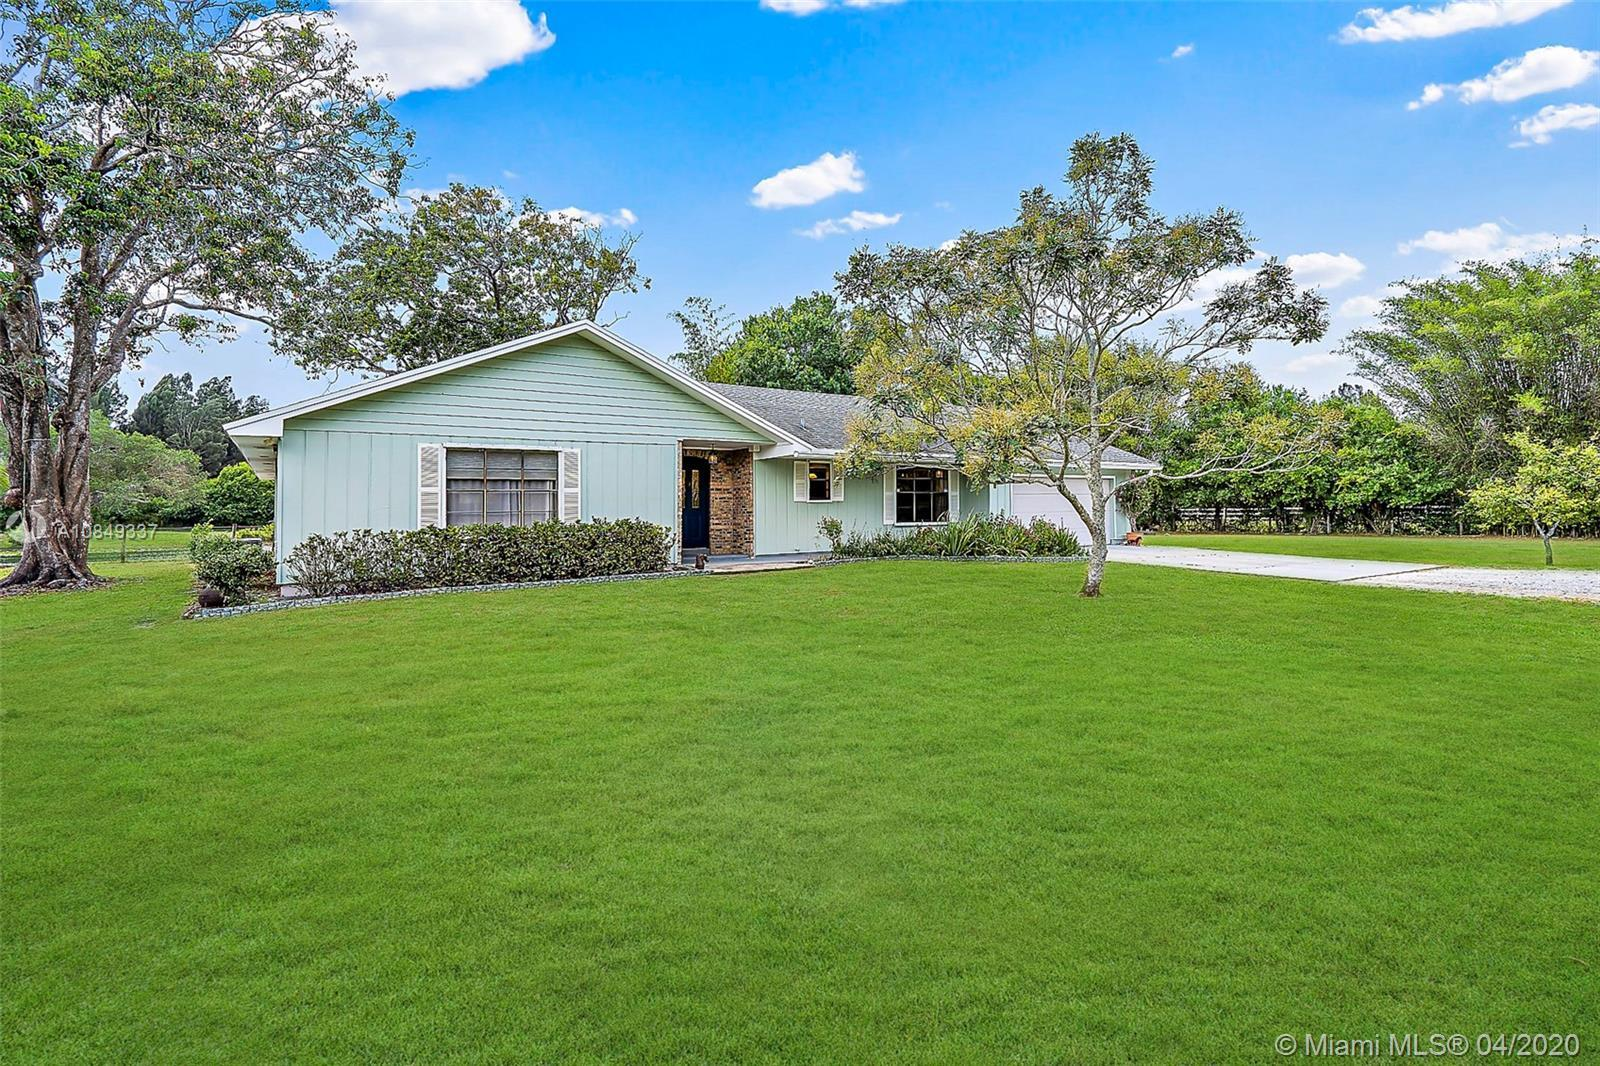 This 5.99 Acre - 4 Bedroom, 3 Bath House in Jupiter Farms has a Horse barn with 4 stalls and an addi